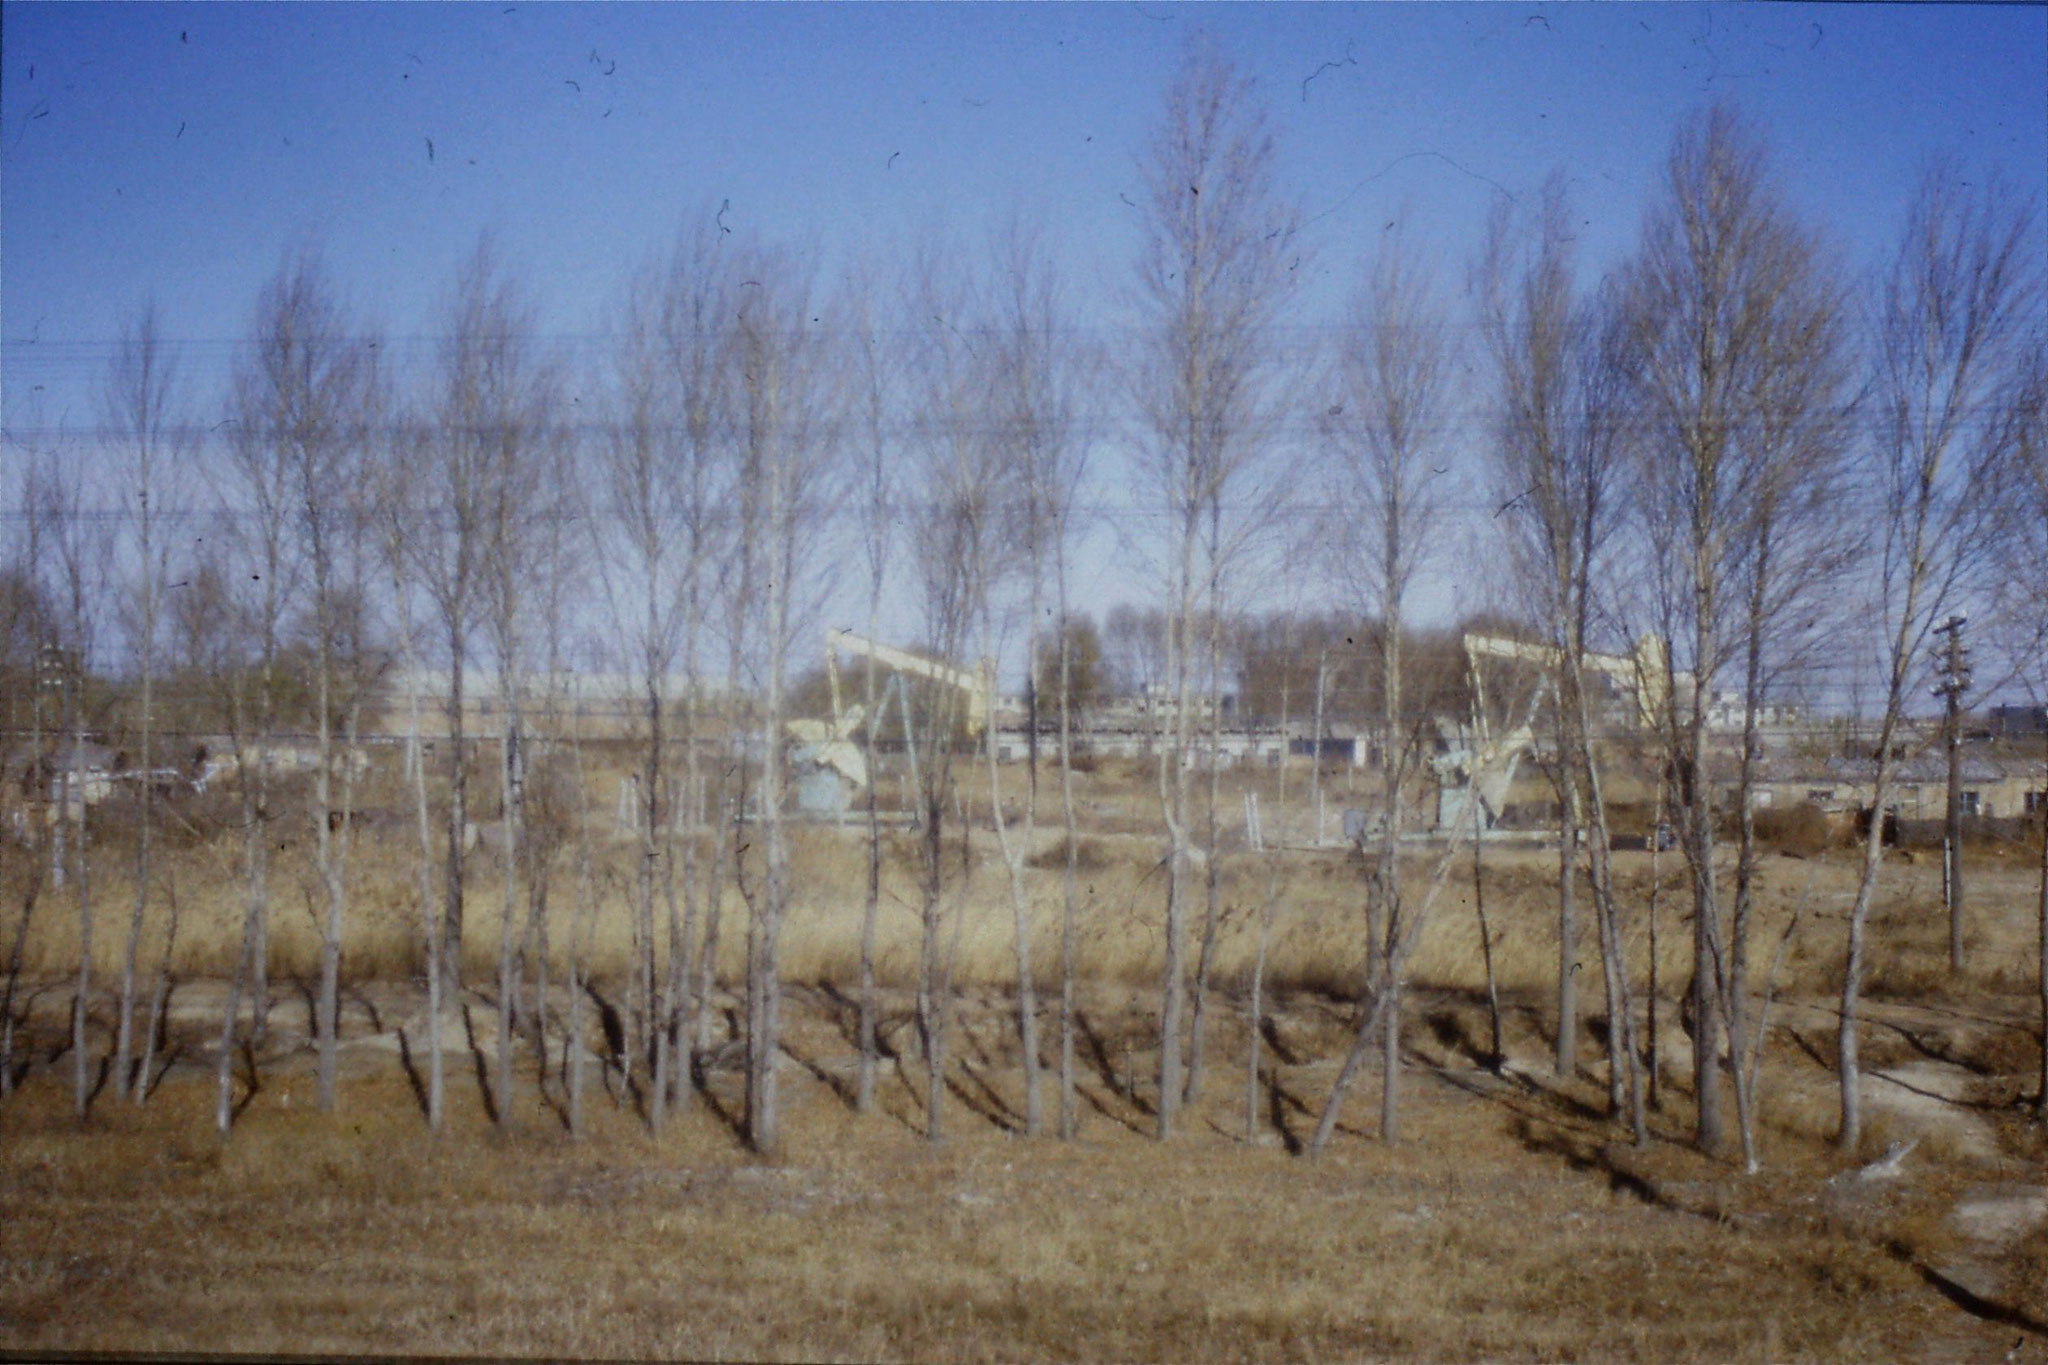 27/10/1988: 22: Daqing oil field